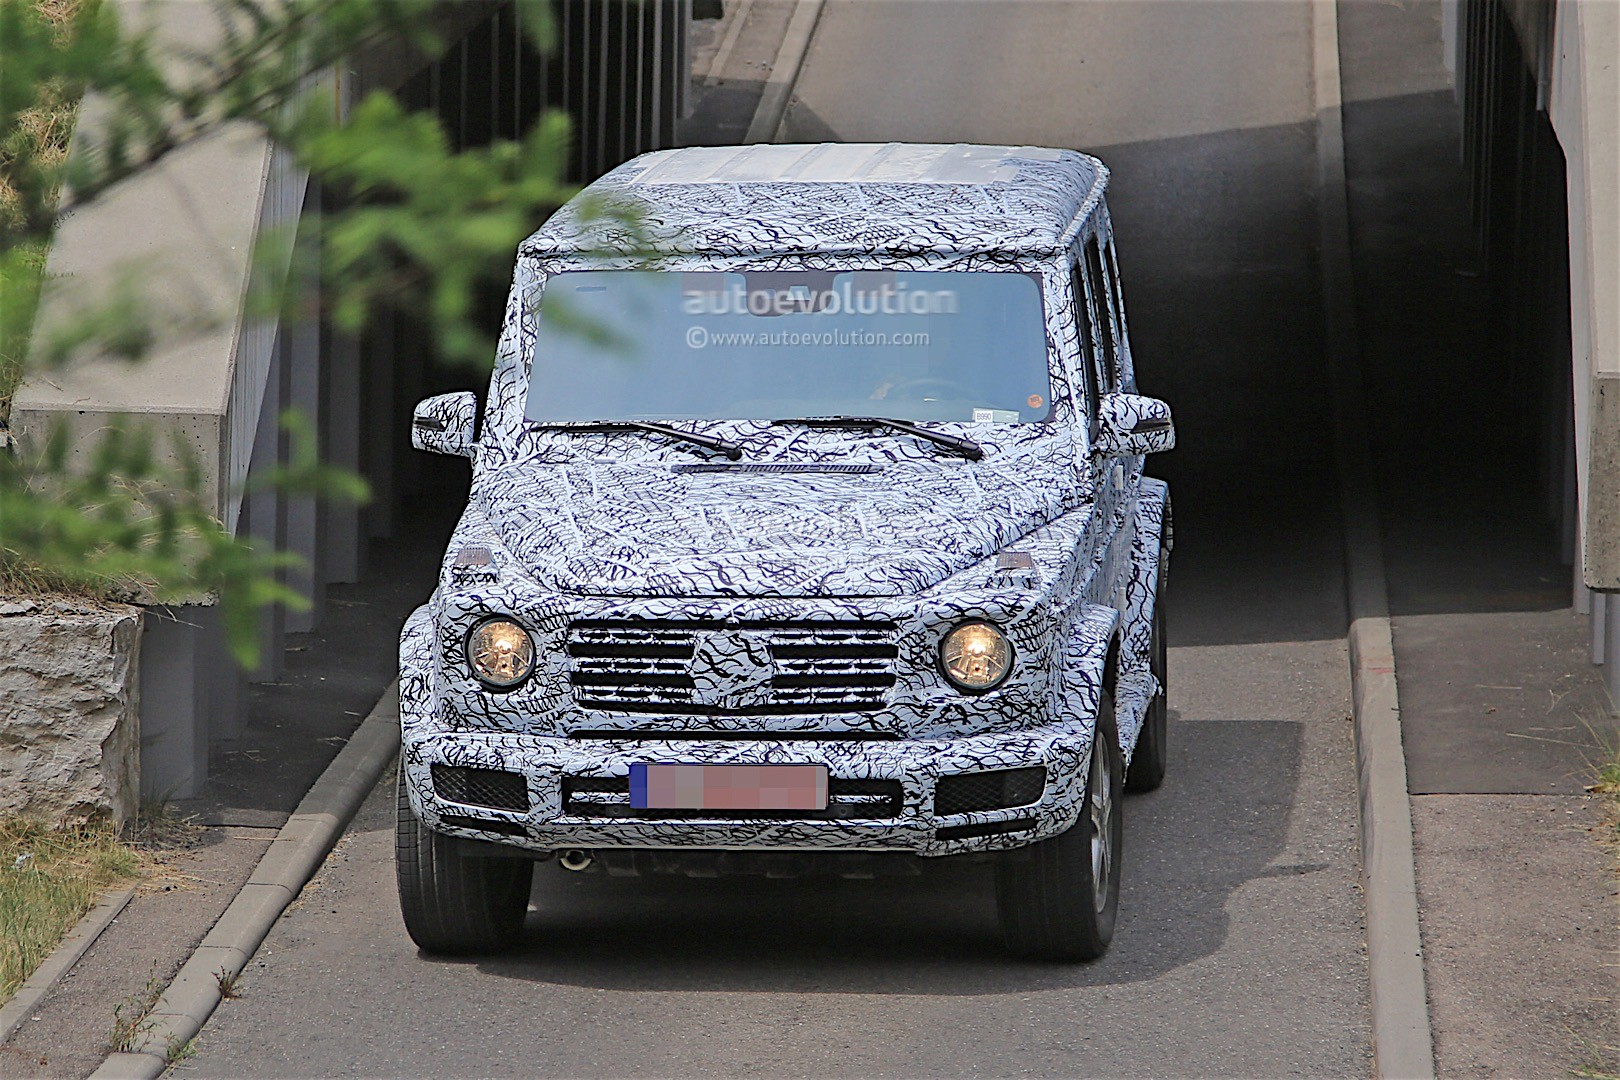 2018 mercedes g-class prototype spied on the road, sounds like a